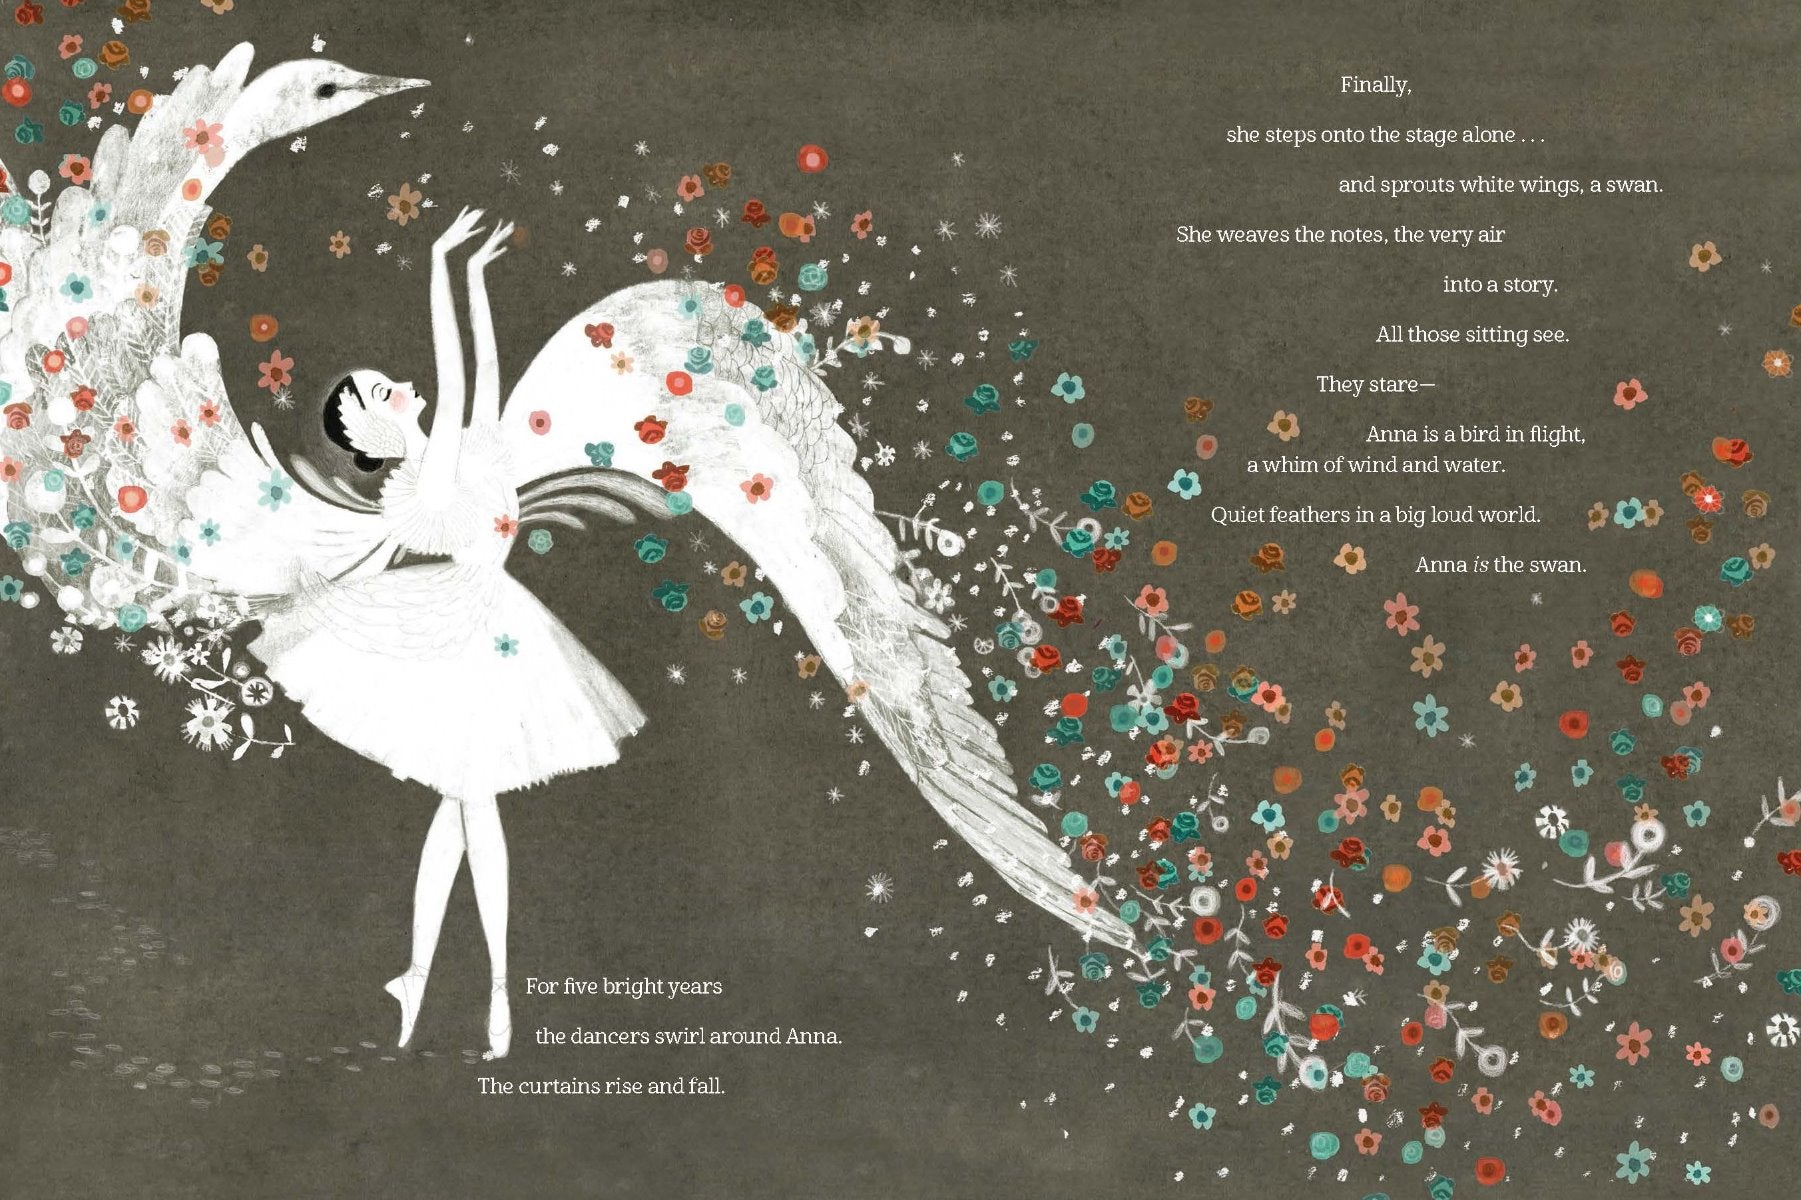 Swan - The Life and Dance of Anna Pavlova by Laurel Snyder